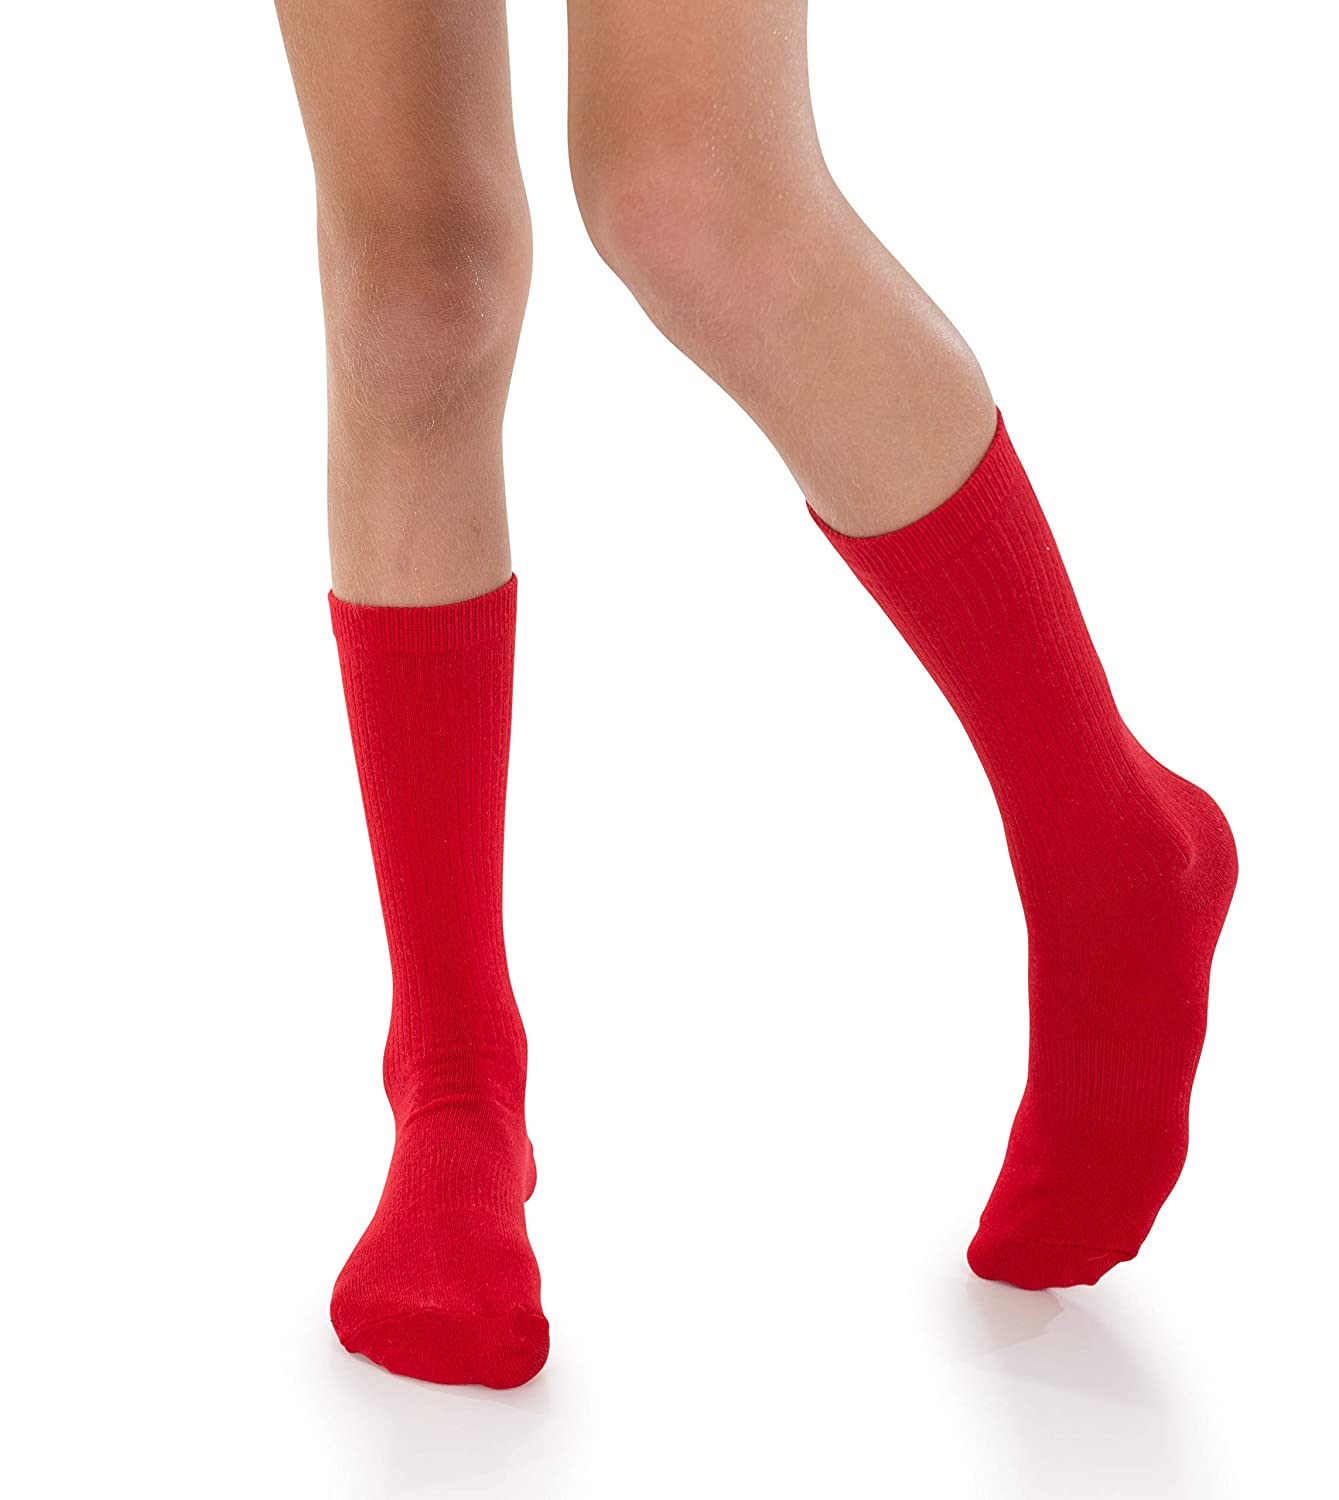 Soccer Sports 4 Pack of Mid-Calf Ribbed Socks with Anti-Slip Grips for School Uniform AFO